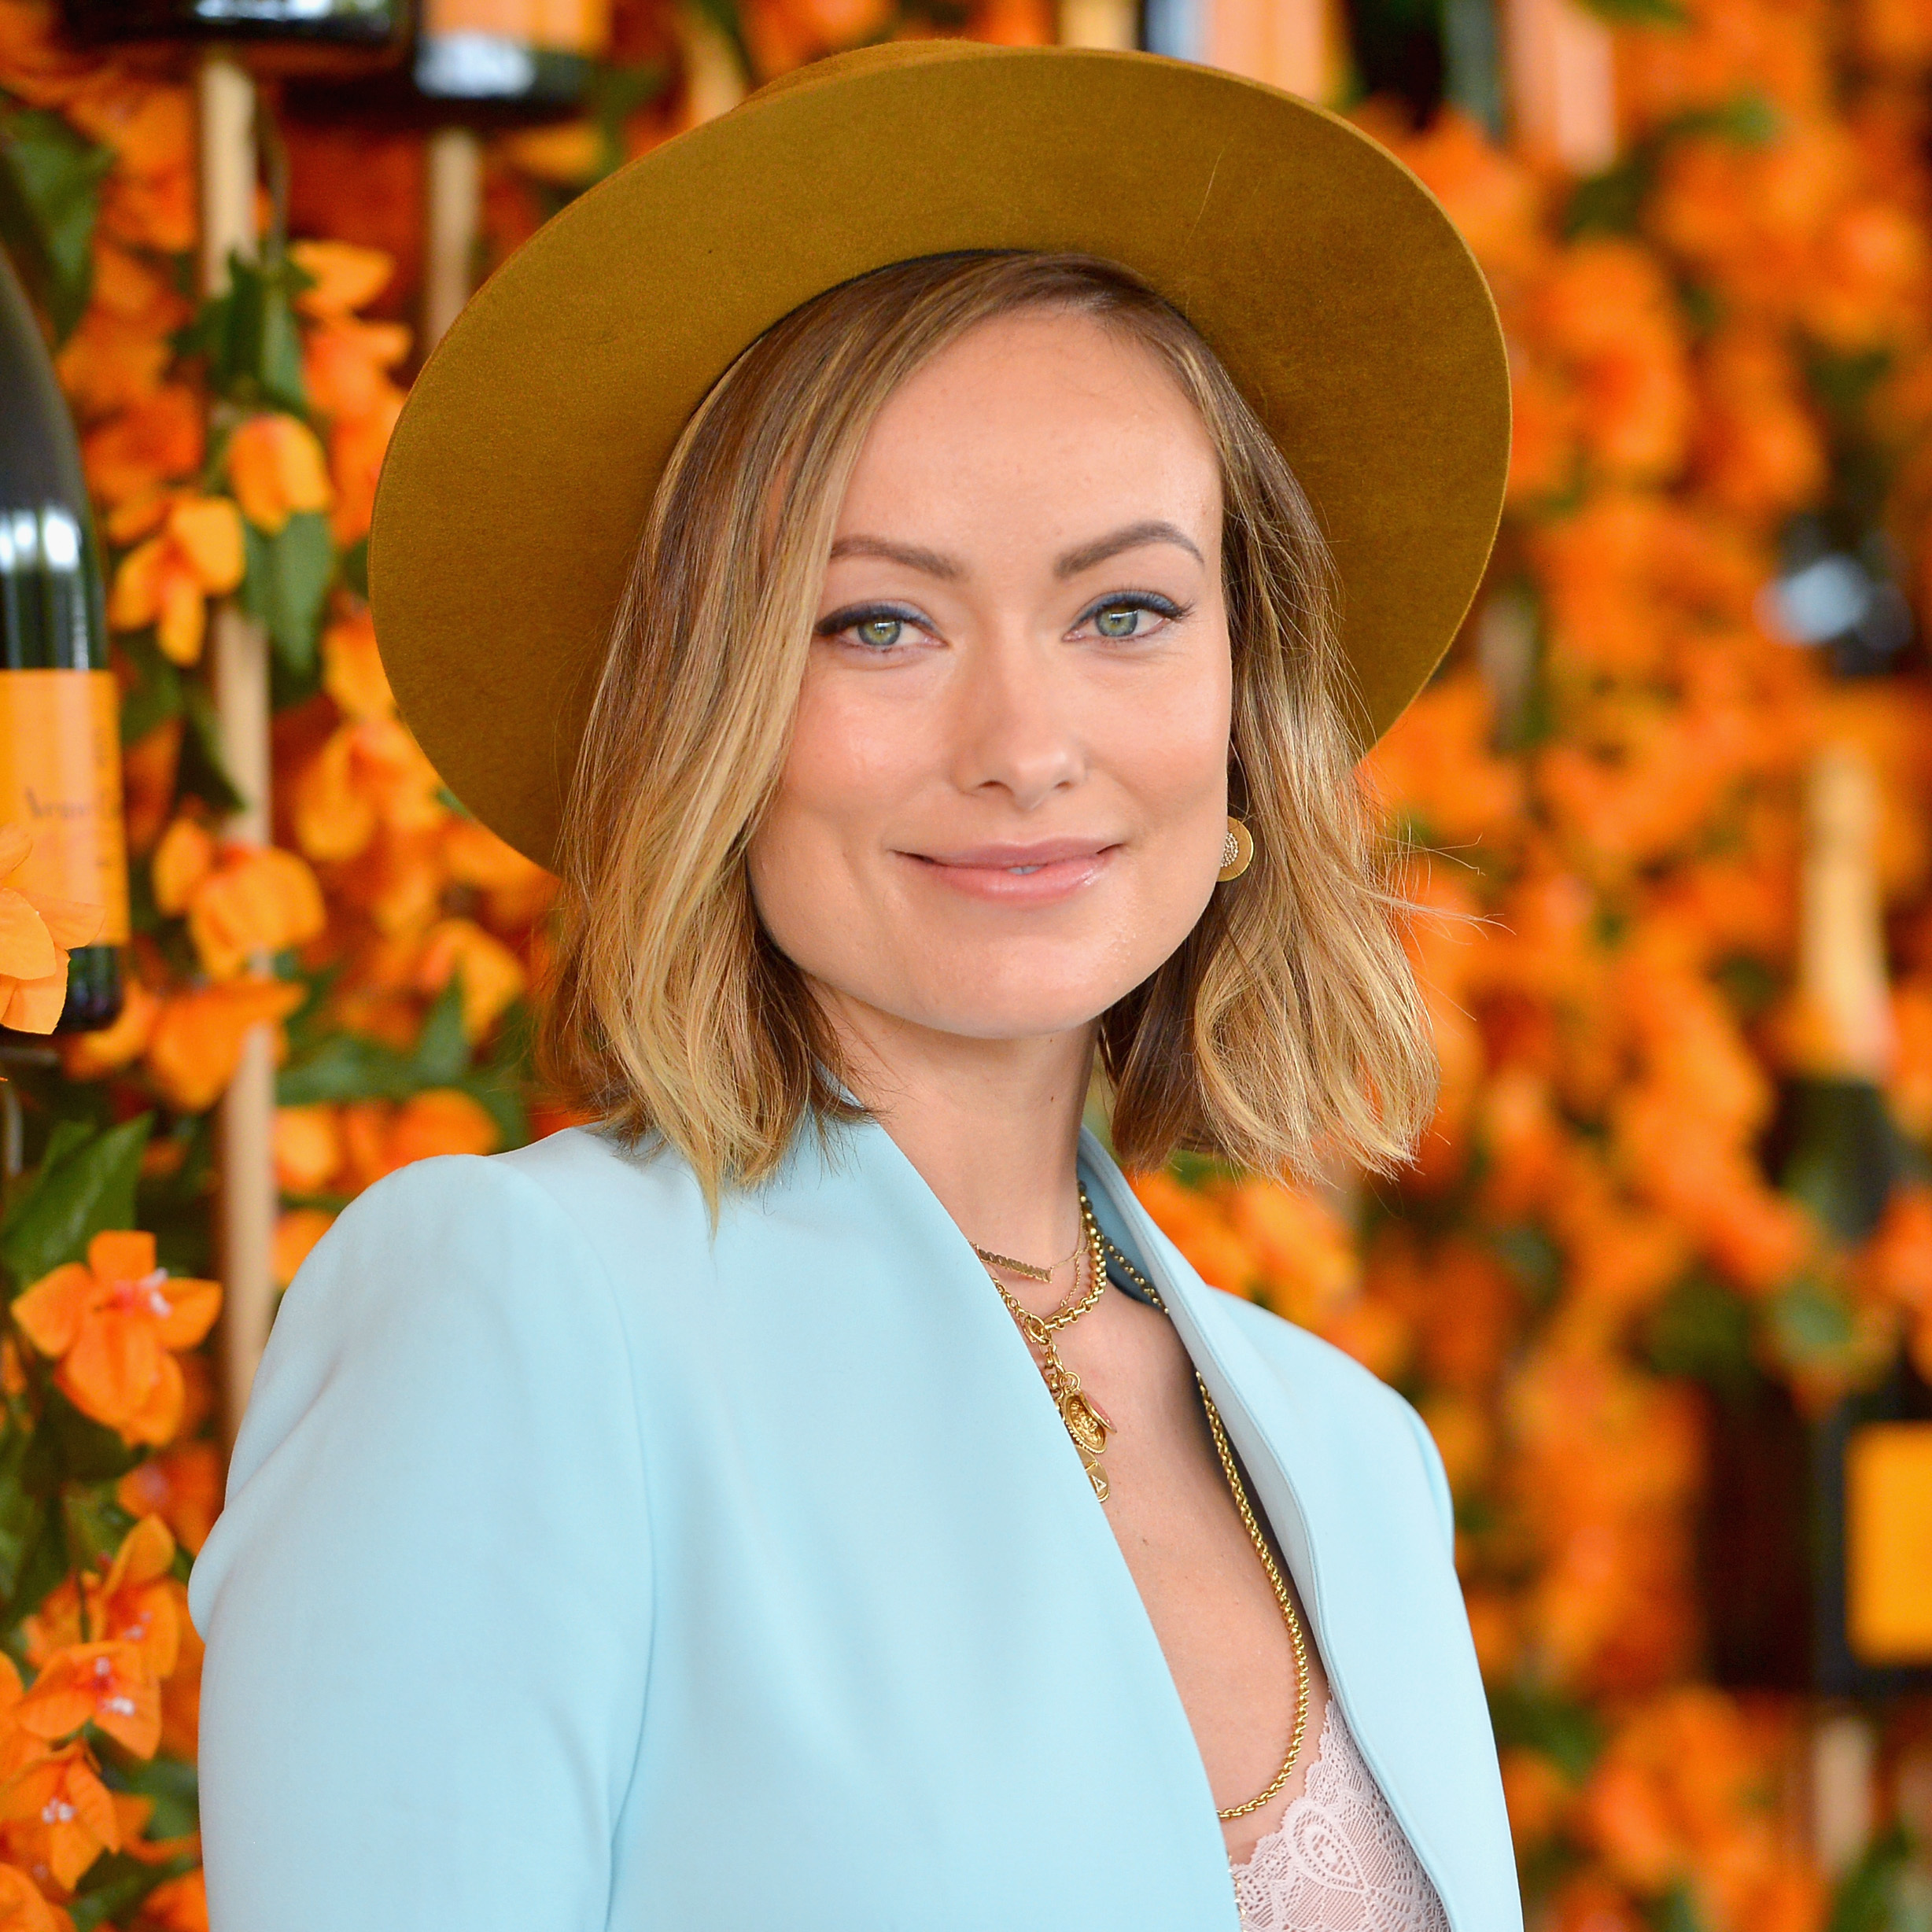 Olivia Wilde hired 'incredibly diverse, female-heavy crew' for directorial debut 'Booksmart'